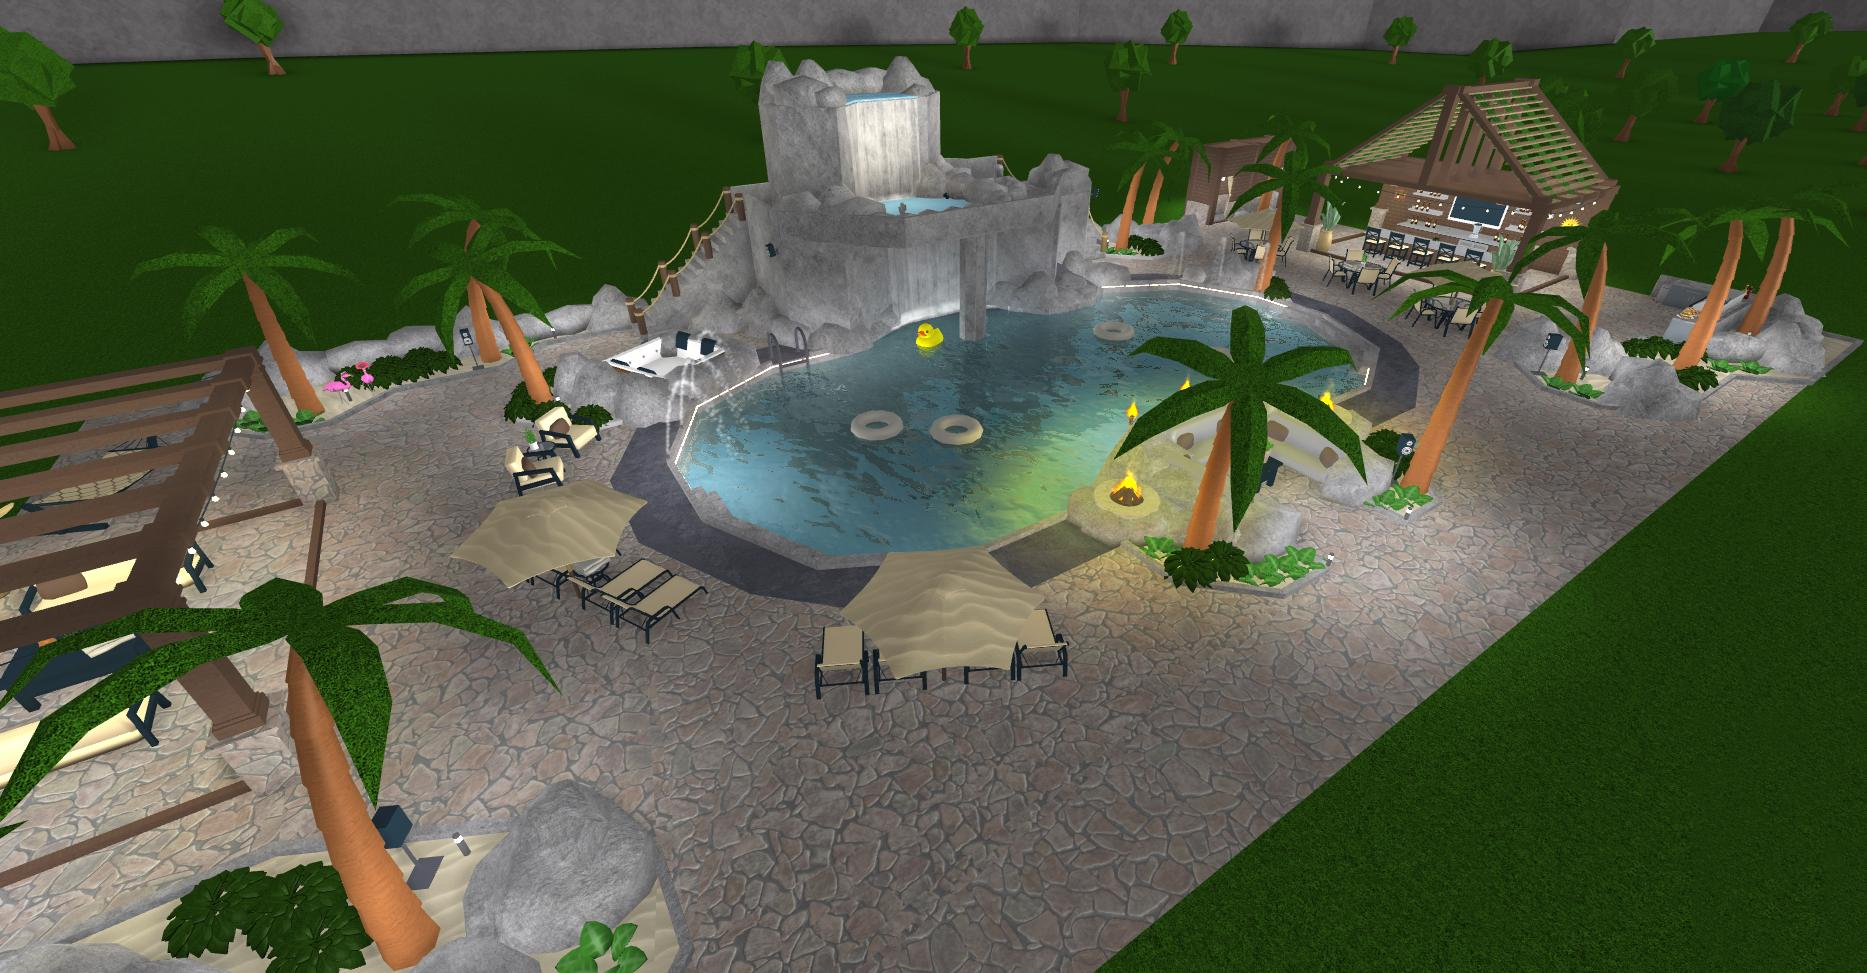 Froggyhopz On Twitter I Wanted To Focus On A Particular Area Of A Build The Backyard This Tropical Oasis Features A Large Curved Pool Which Has A Rock Formation That Includes